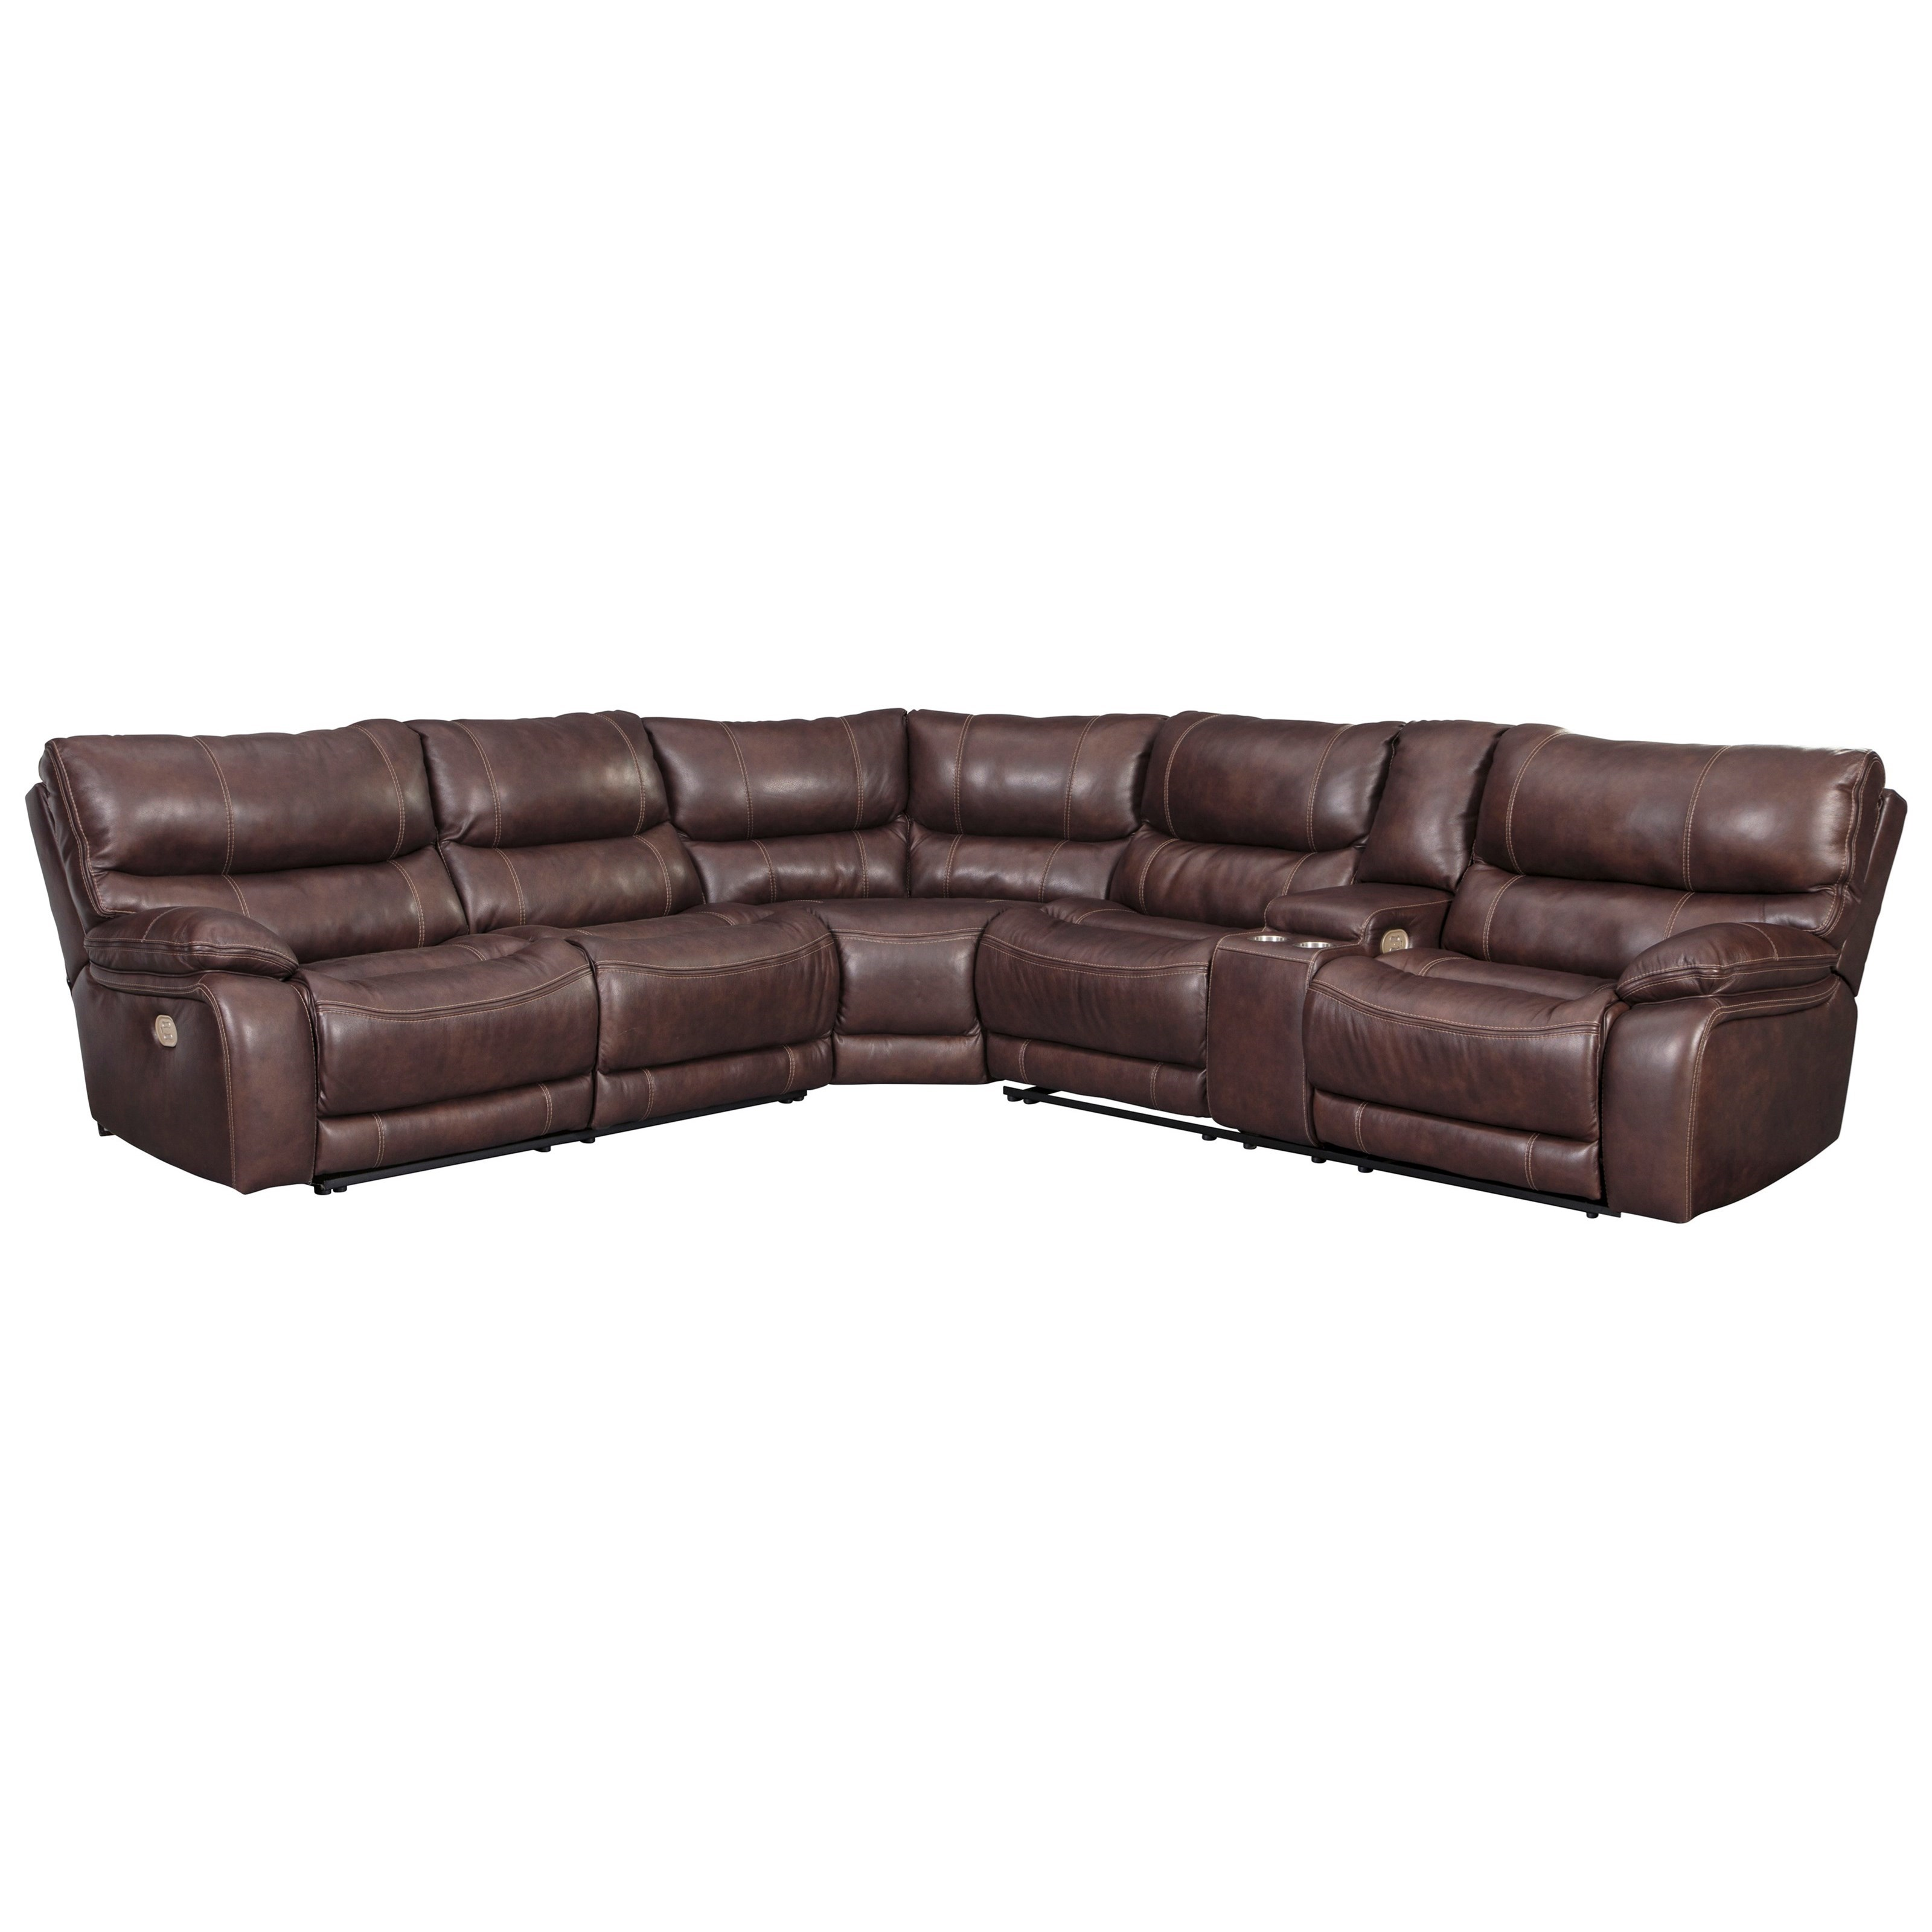 Benchcraft By Ashley Muirfield 3 Piece Leather Match Power Reclining Sectional Royal Furniture Reclining Sectional Sofas